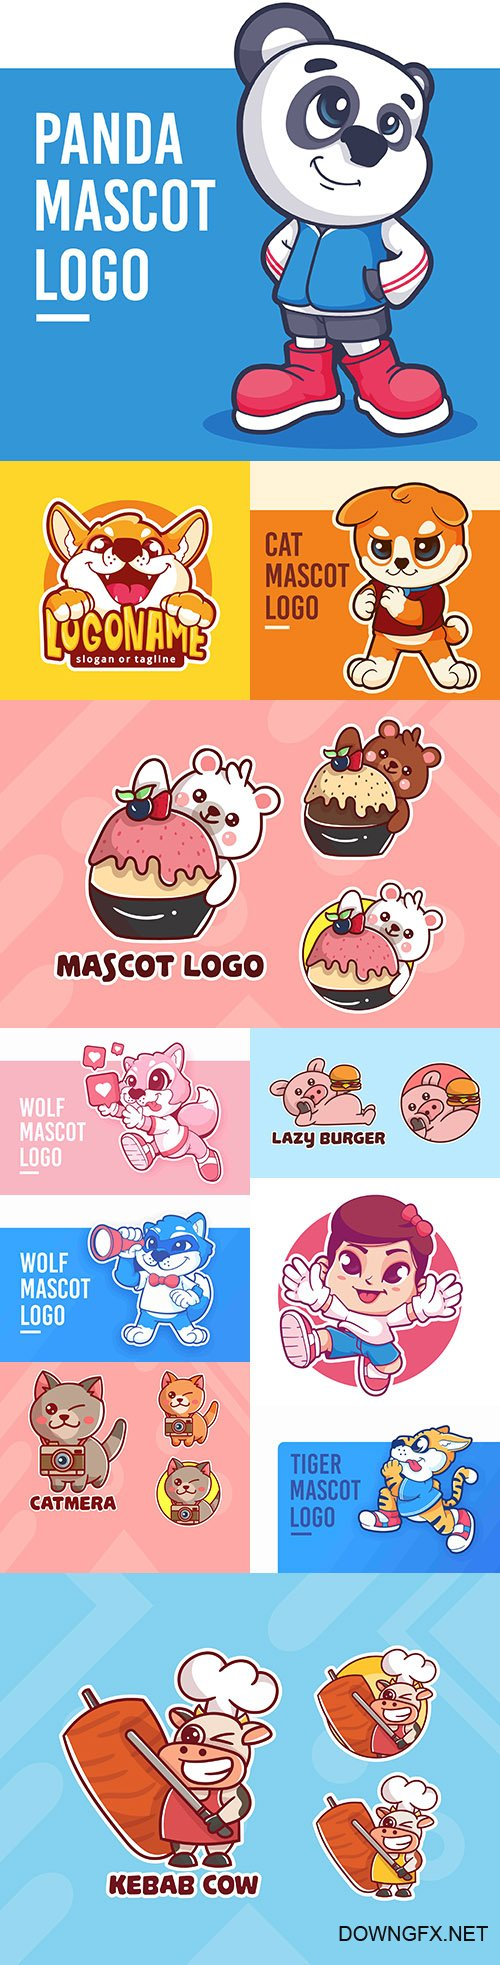 Emblem mascot and Brand name logos design 16